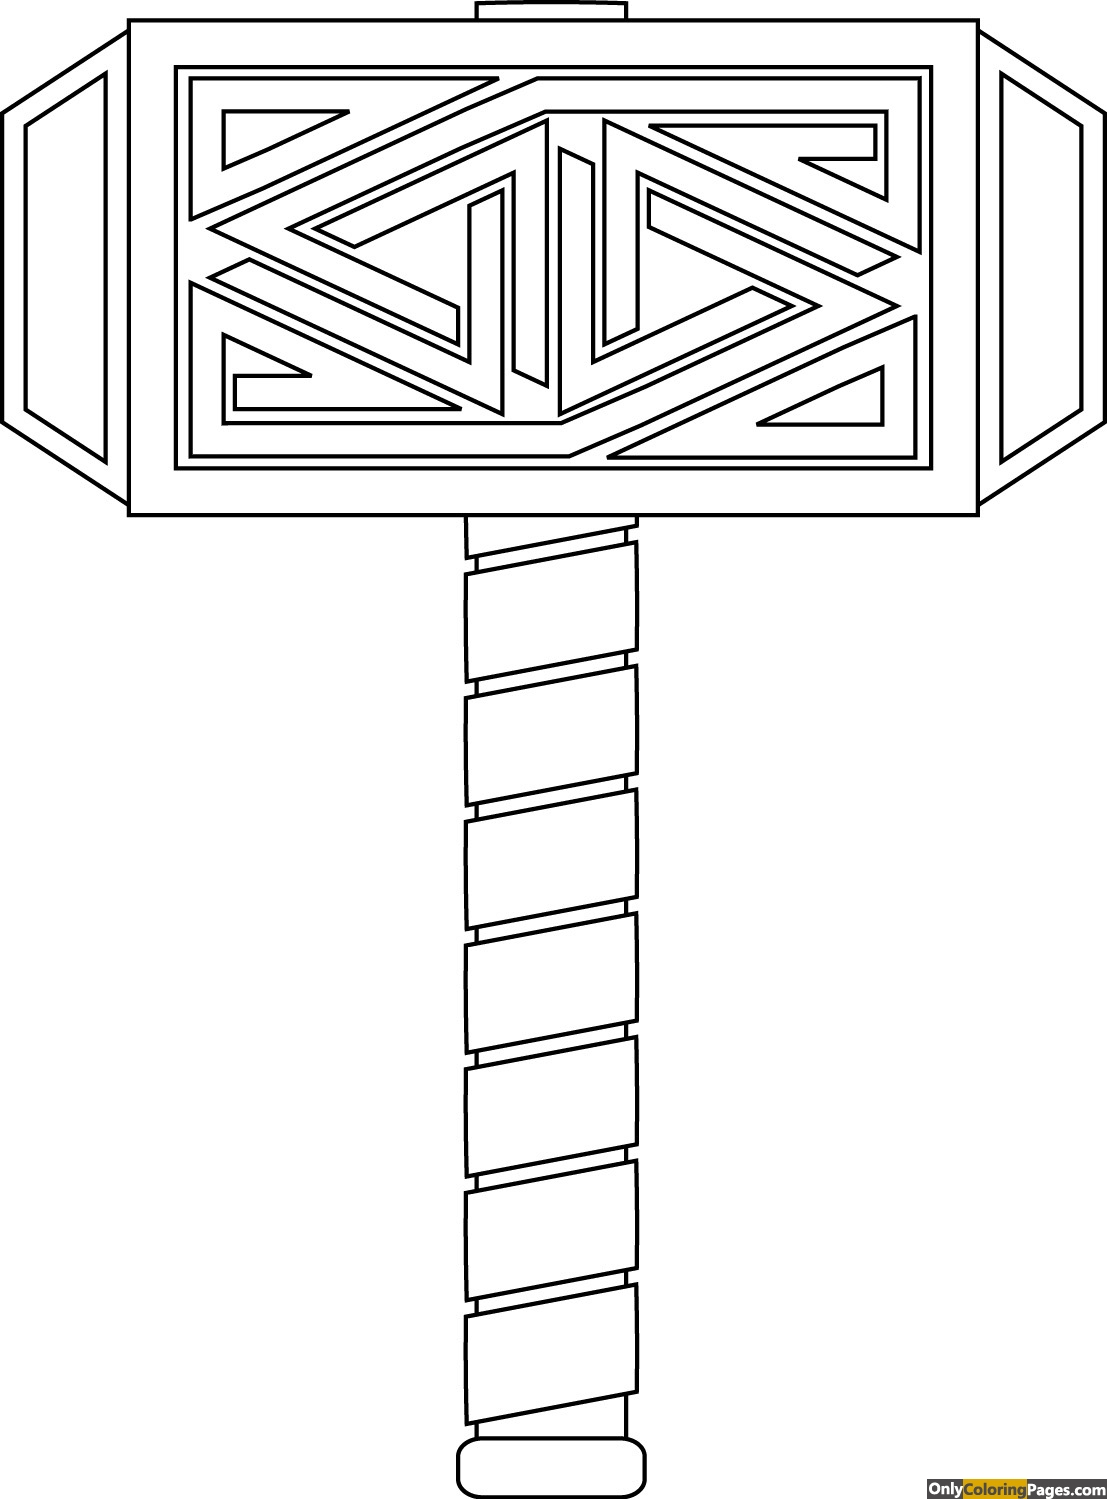 thor logo coloring pages